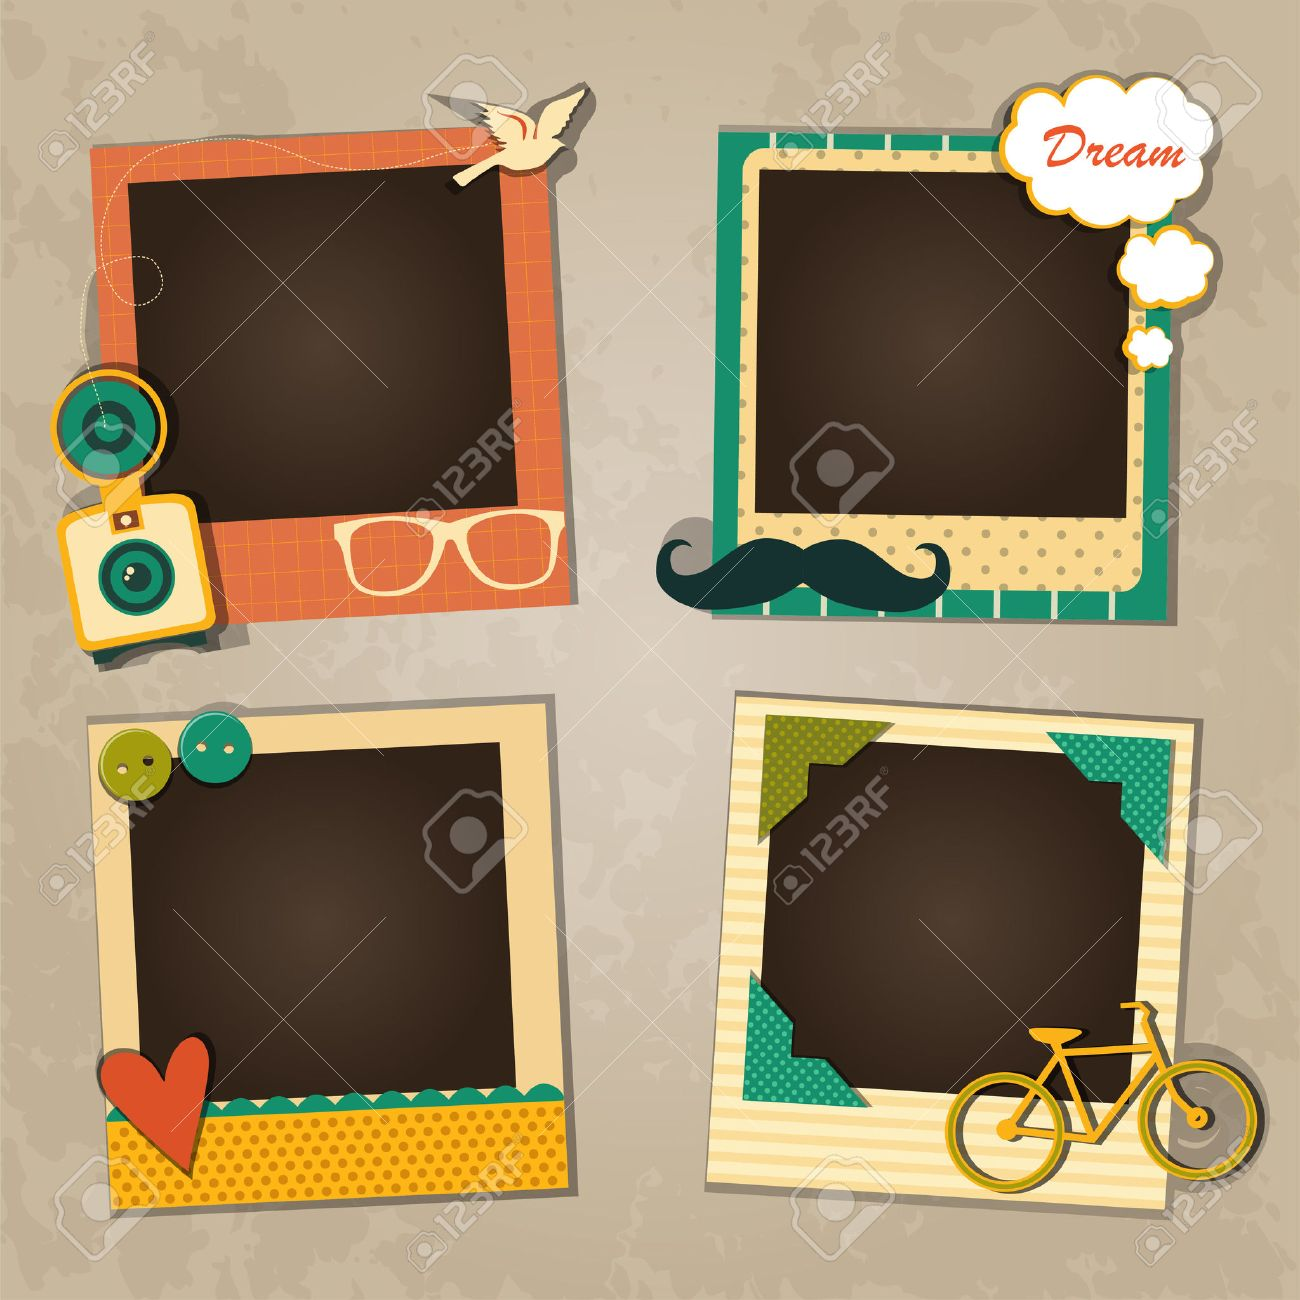 Decorative Template Frame Design For Baby Photo And Memories Royalty Free Cliparts Vectors And Stock Illustration Image 33526018